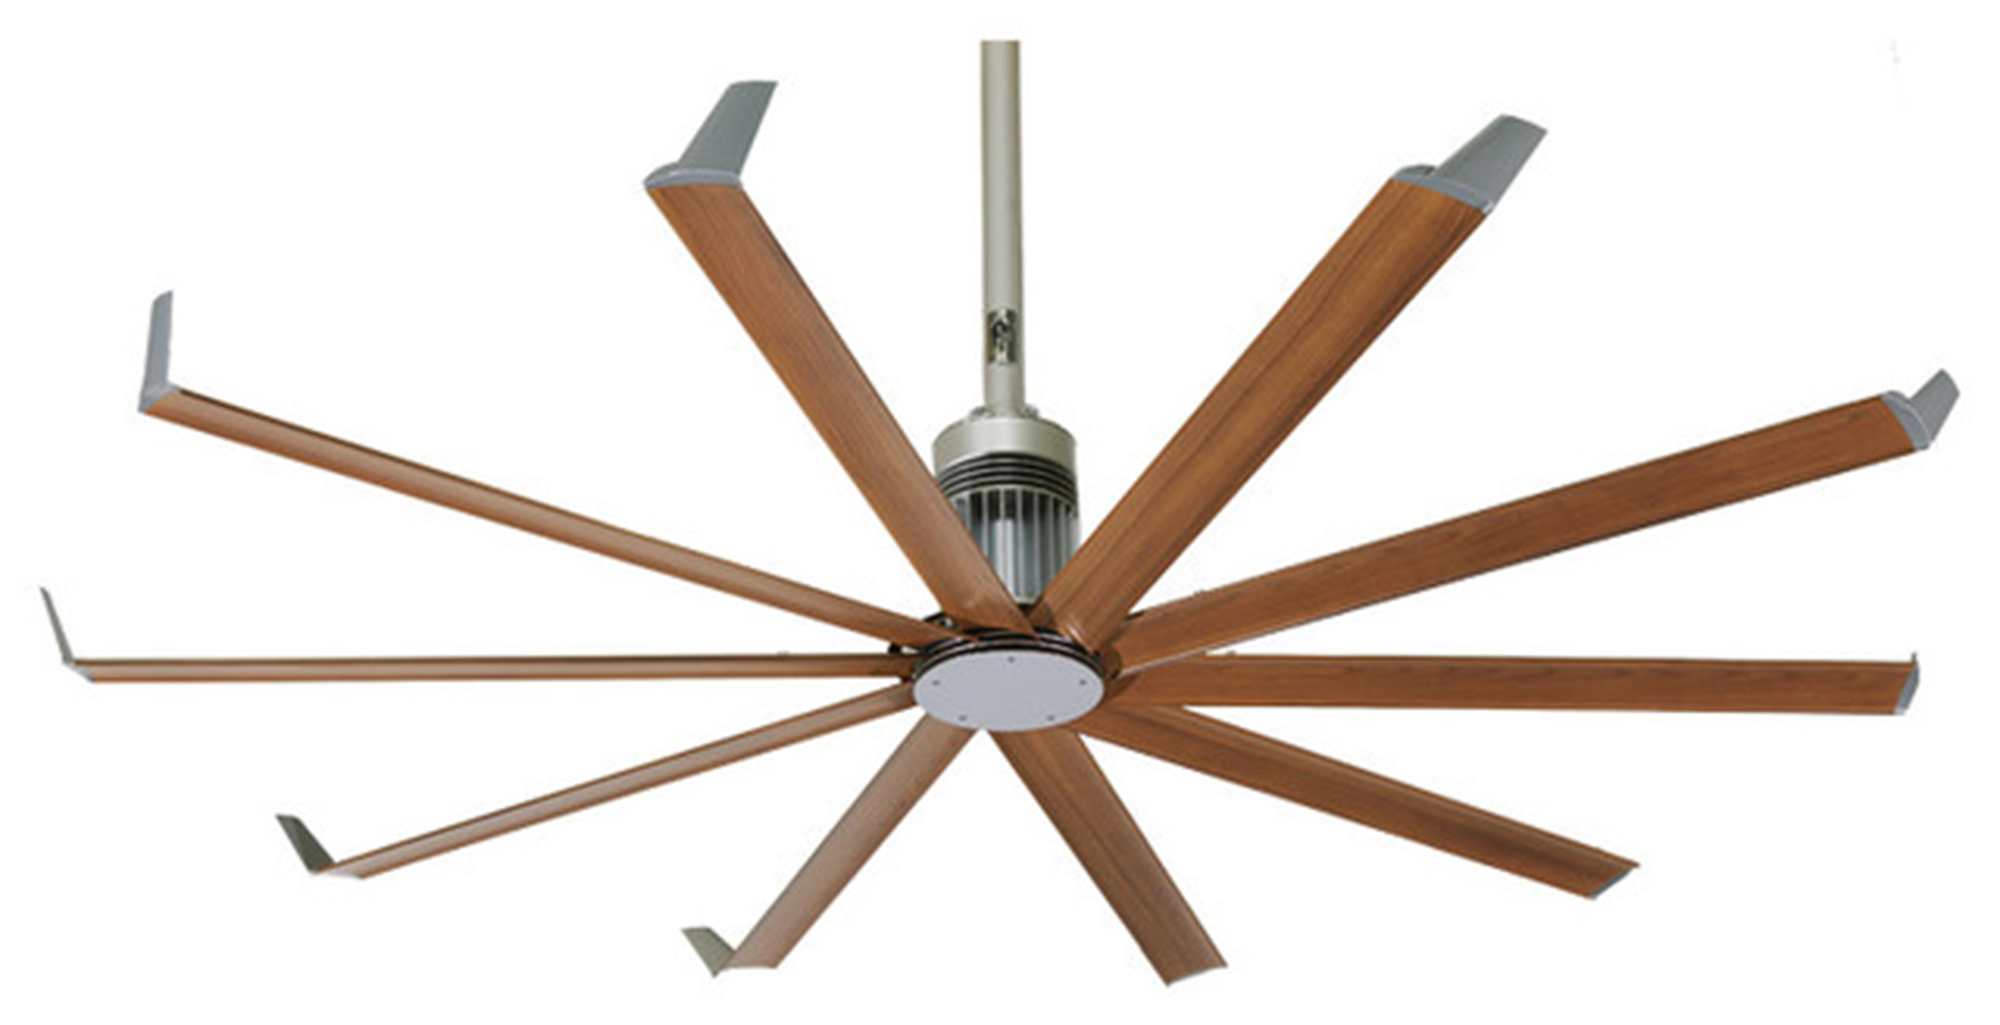 Big ass ceiling fan